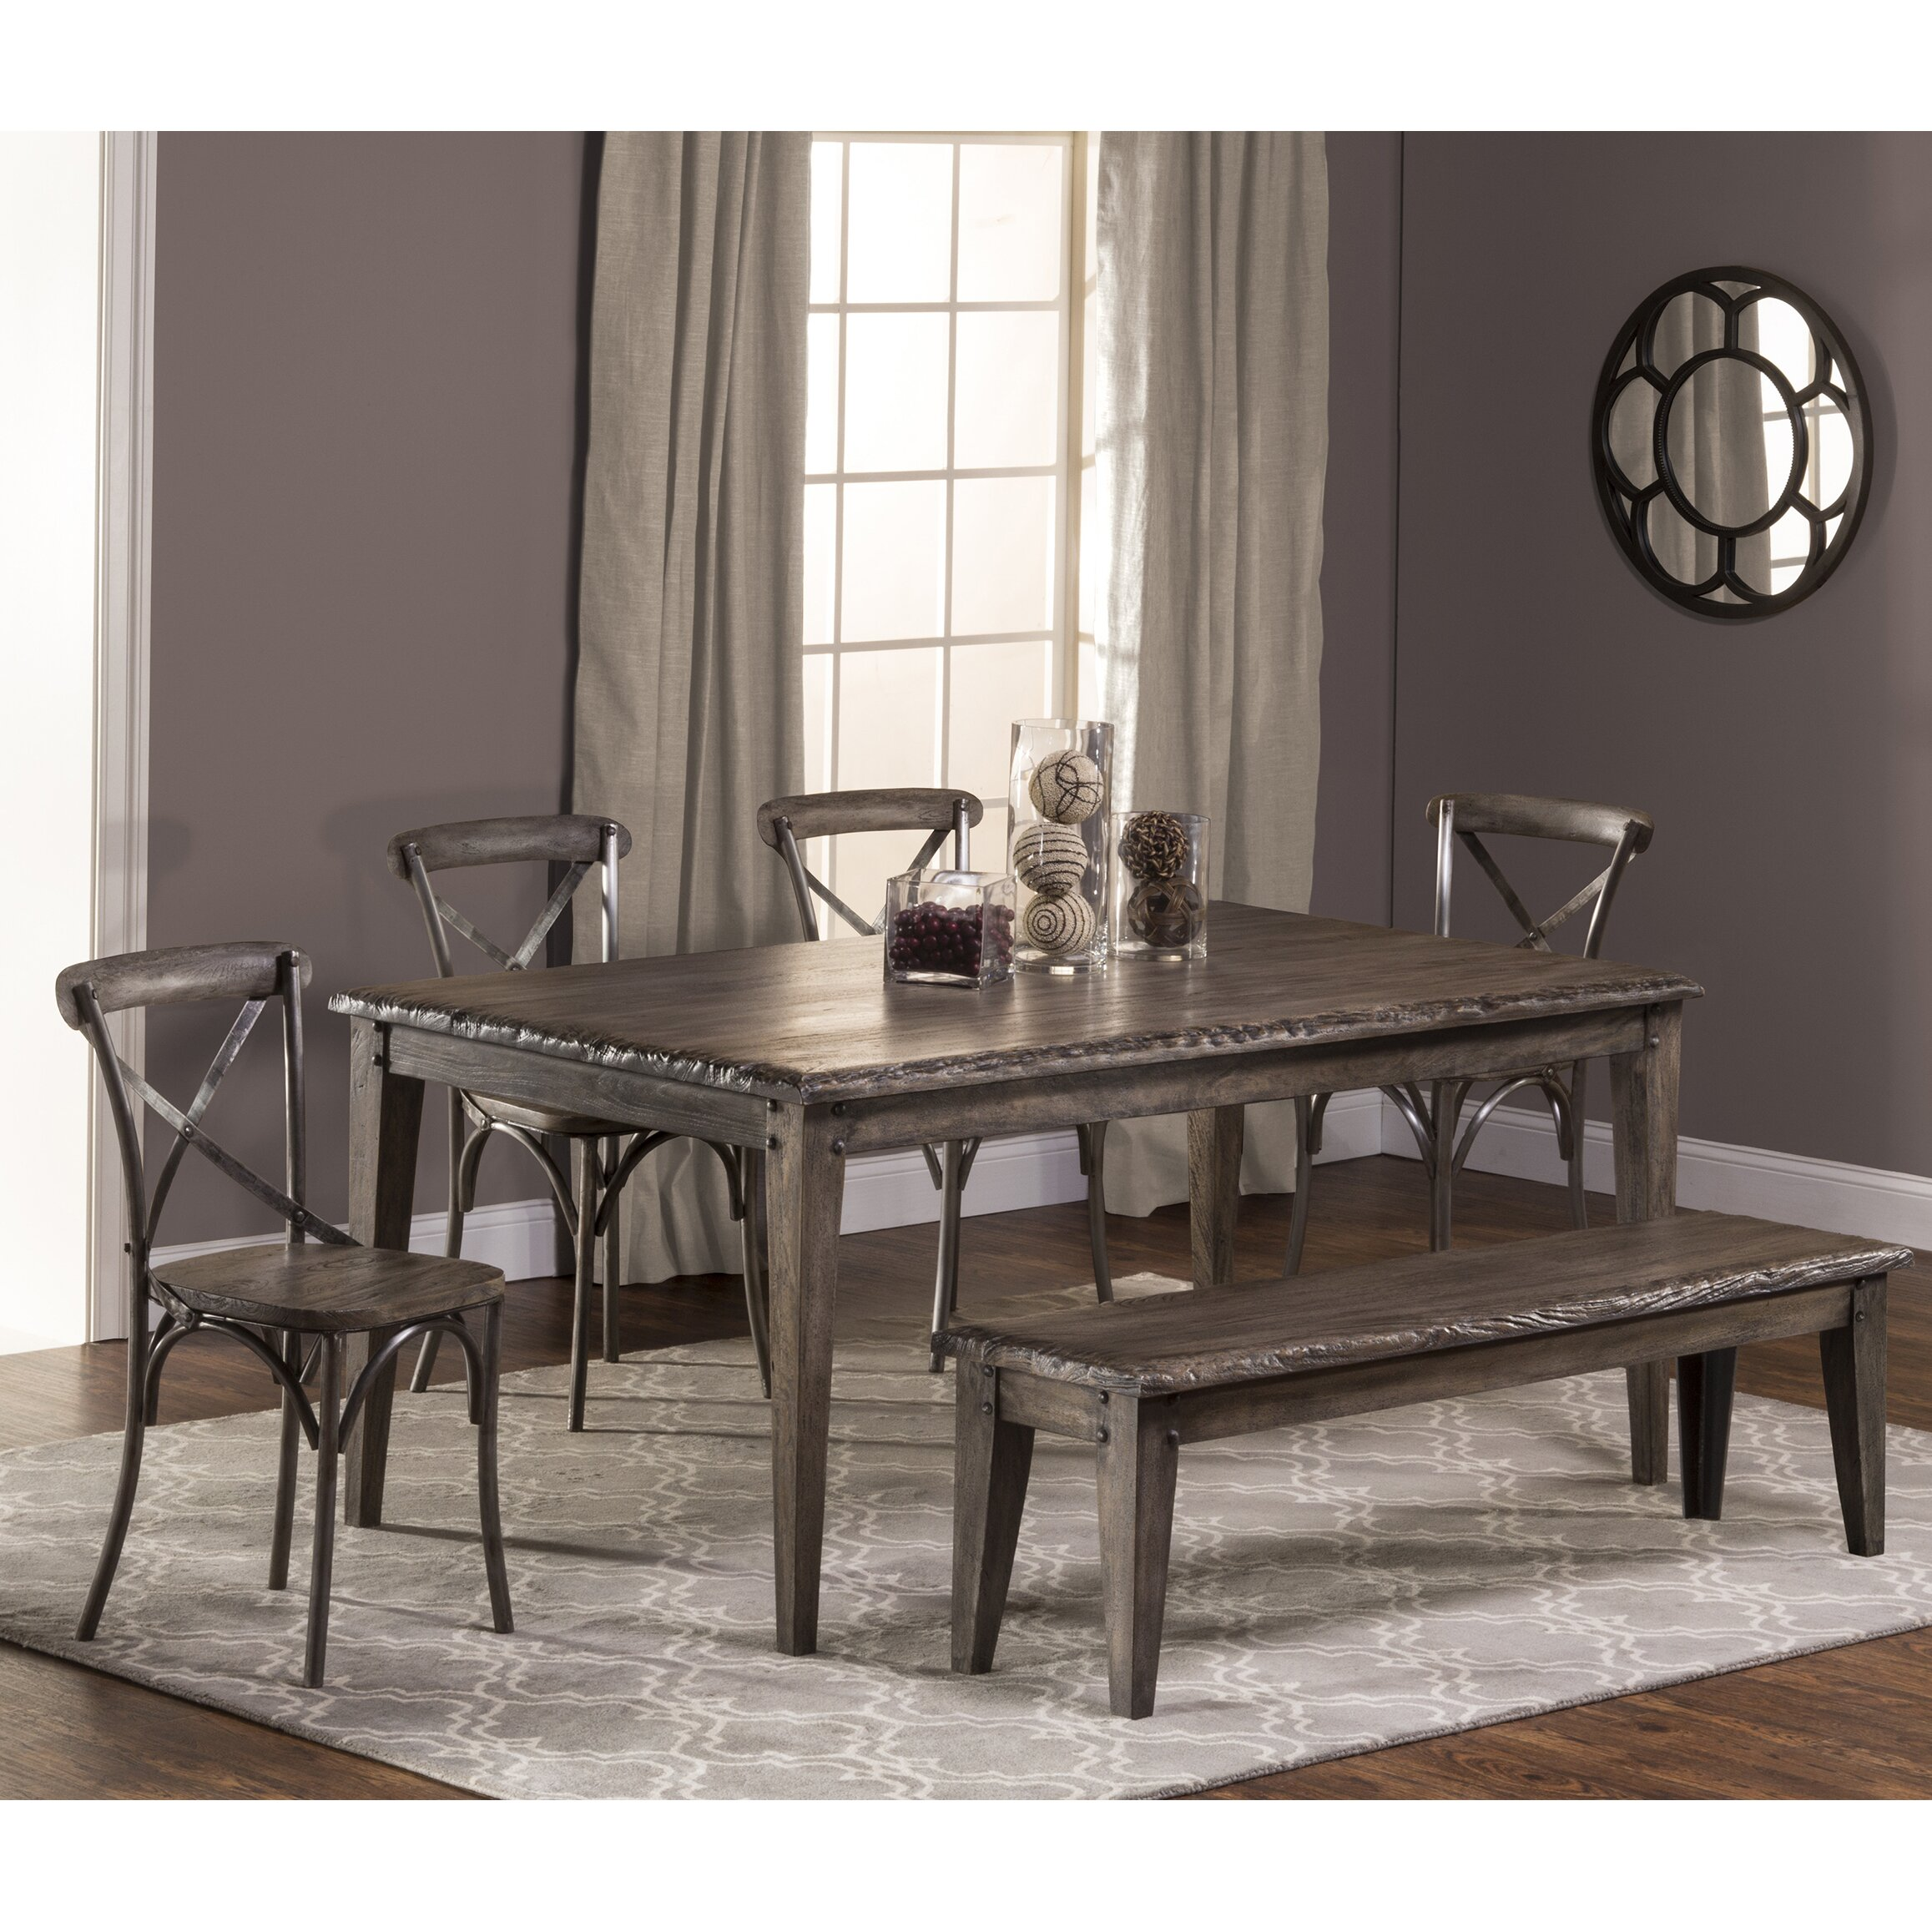 Hillsdale lorient 6 piece dining set wayfair for Dining room sets 6 piece